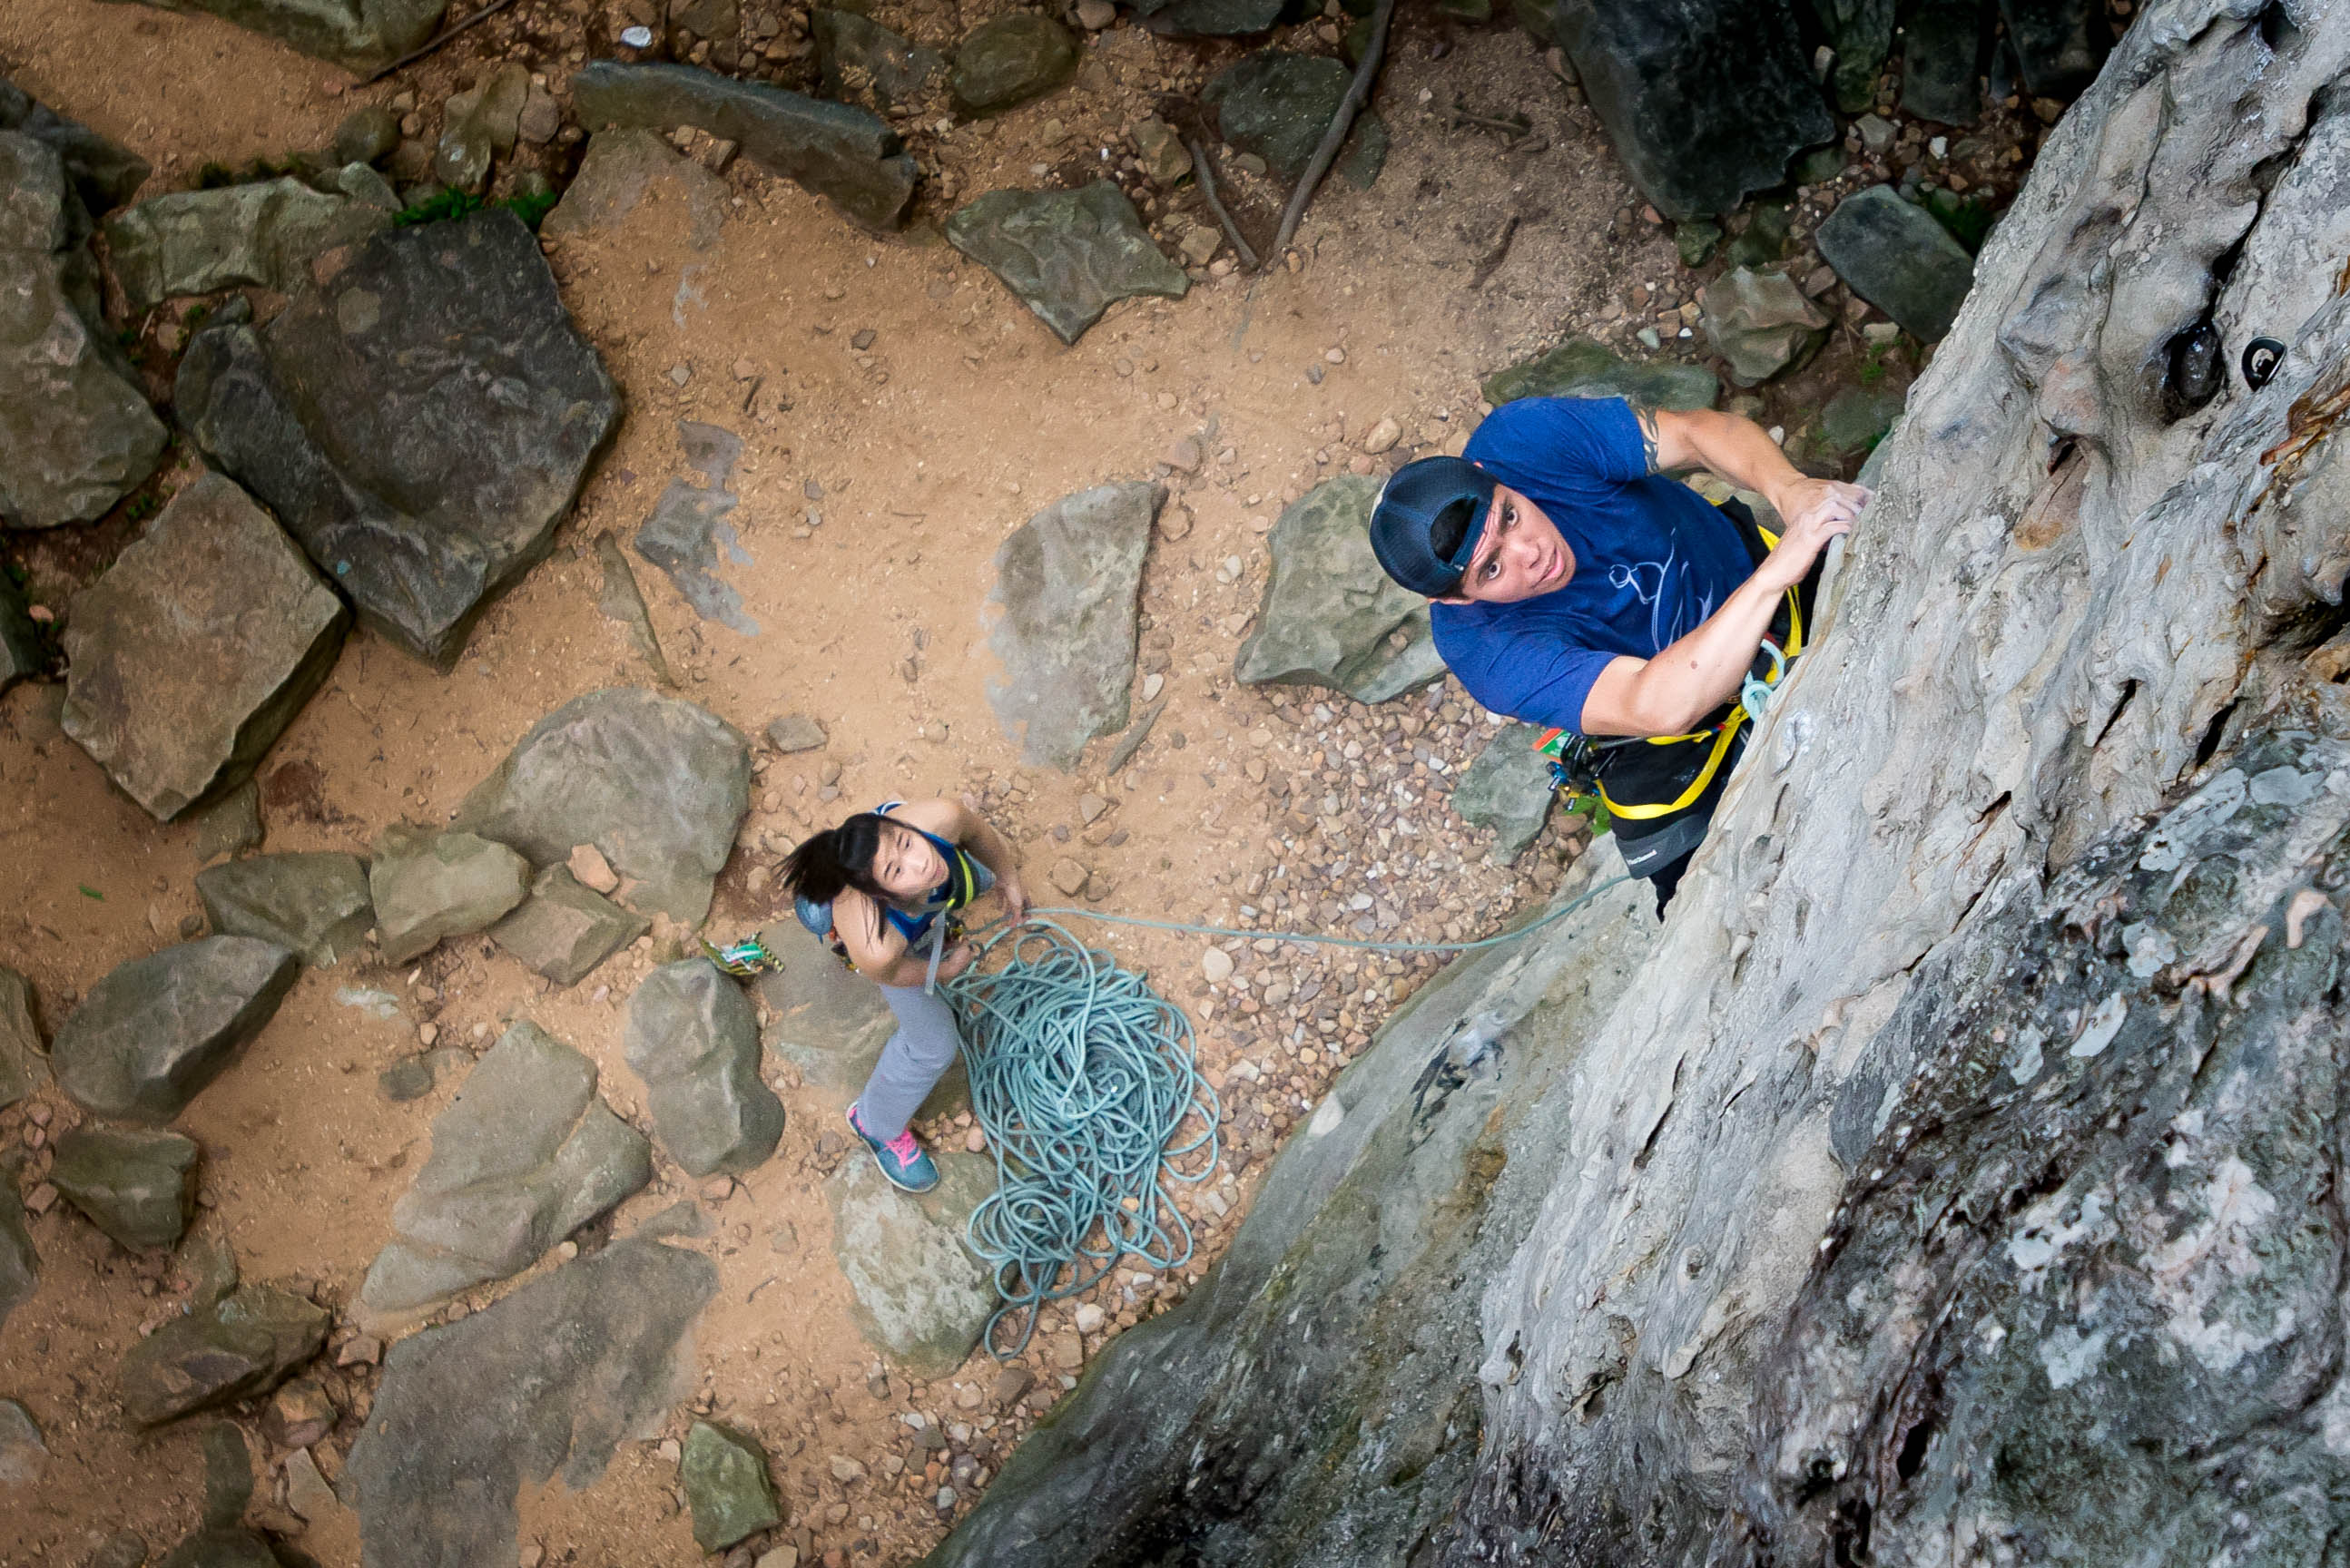 southeast rock climbing photographer